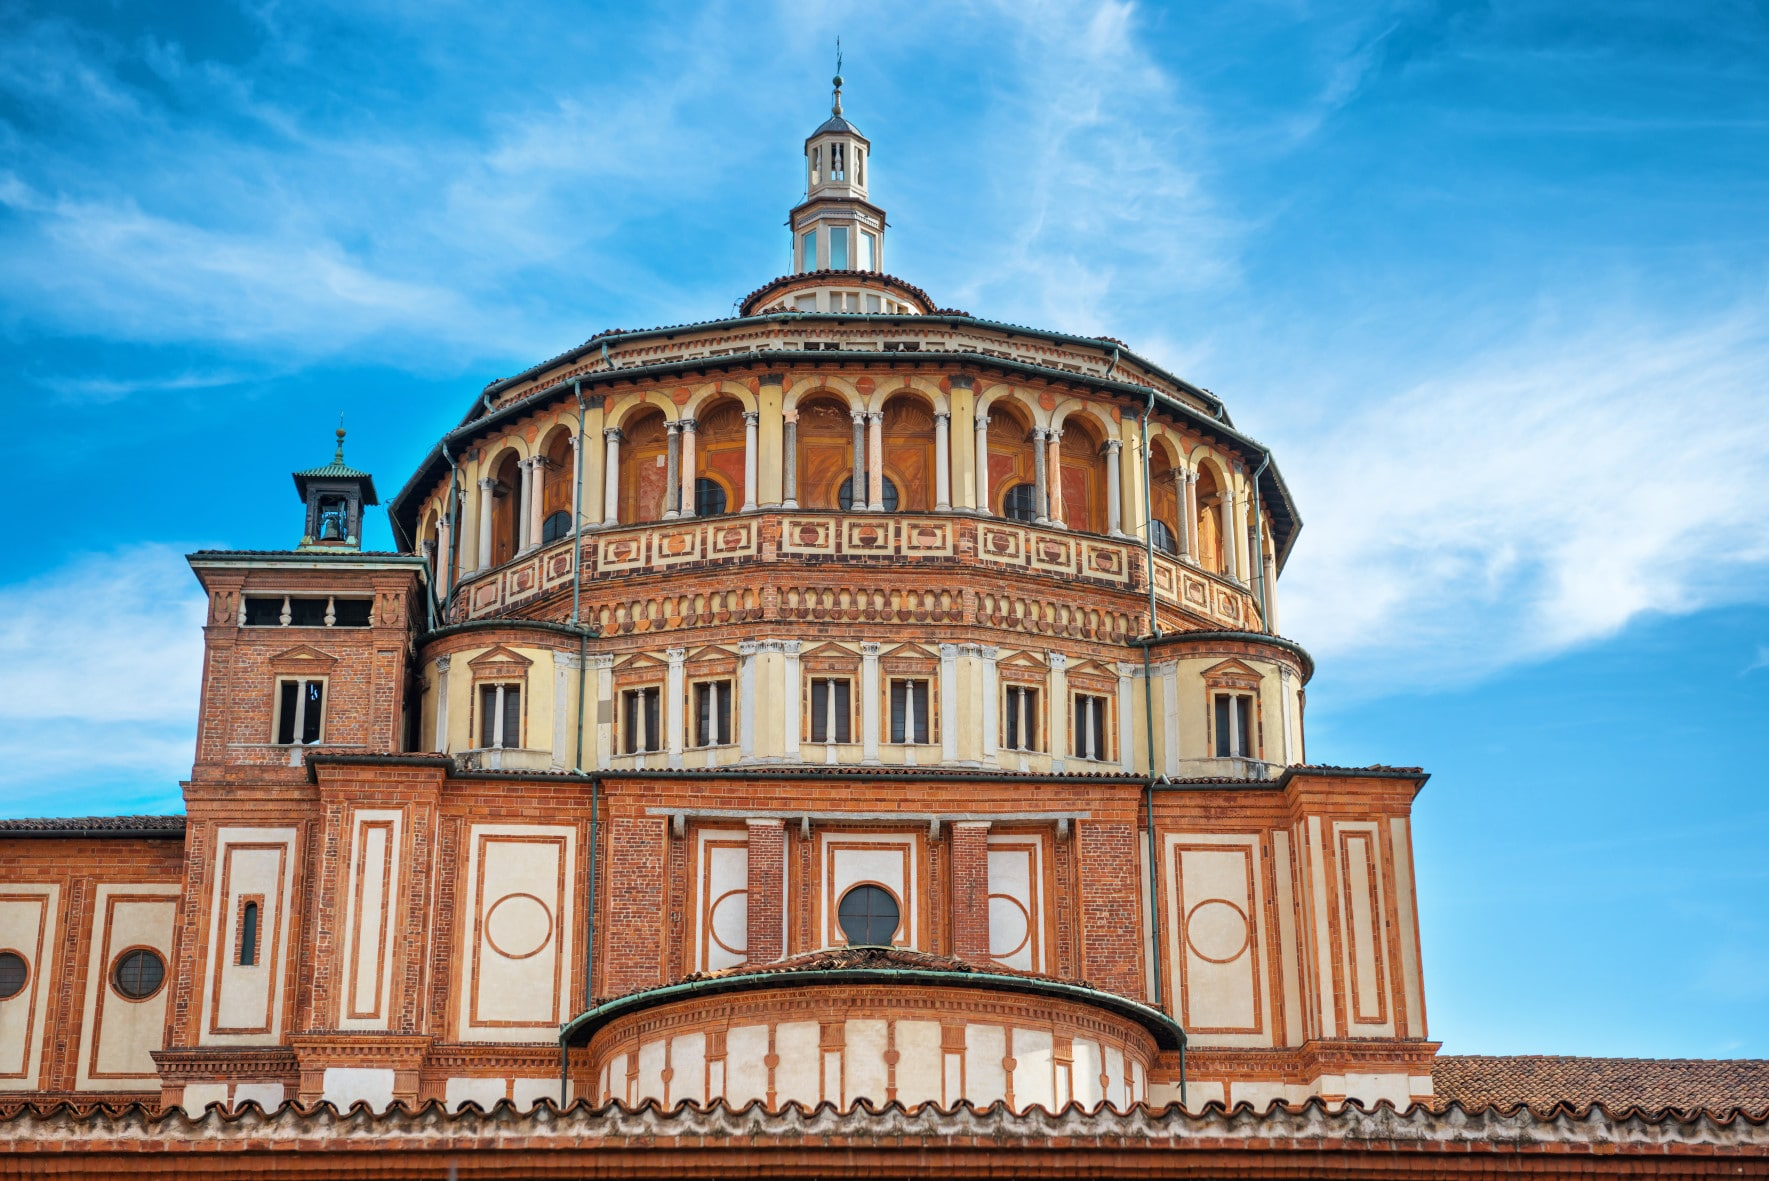 Church of Holy Mary of Grace- Chiesa di Santa Maria delle Grazie, 1497, Milan, Italy, home of the famous Cenacolo from Leonardo da Vinci.